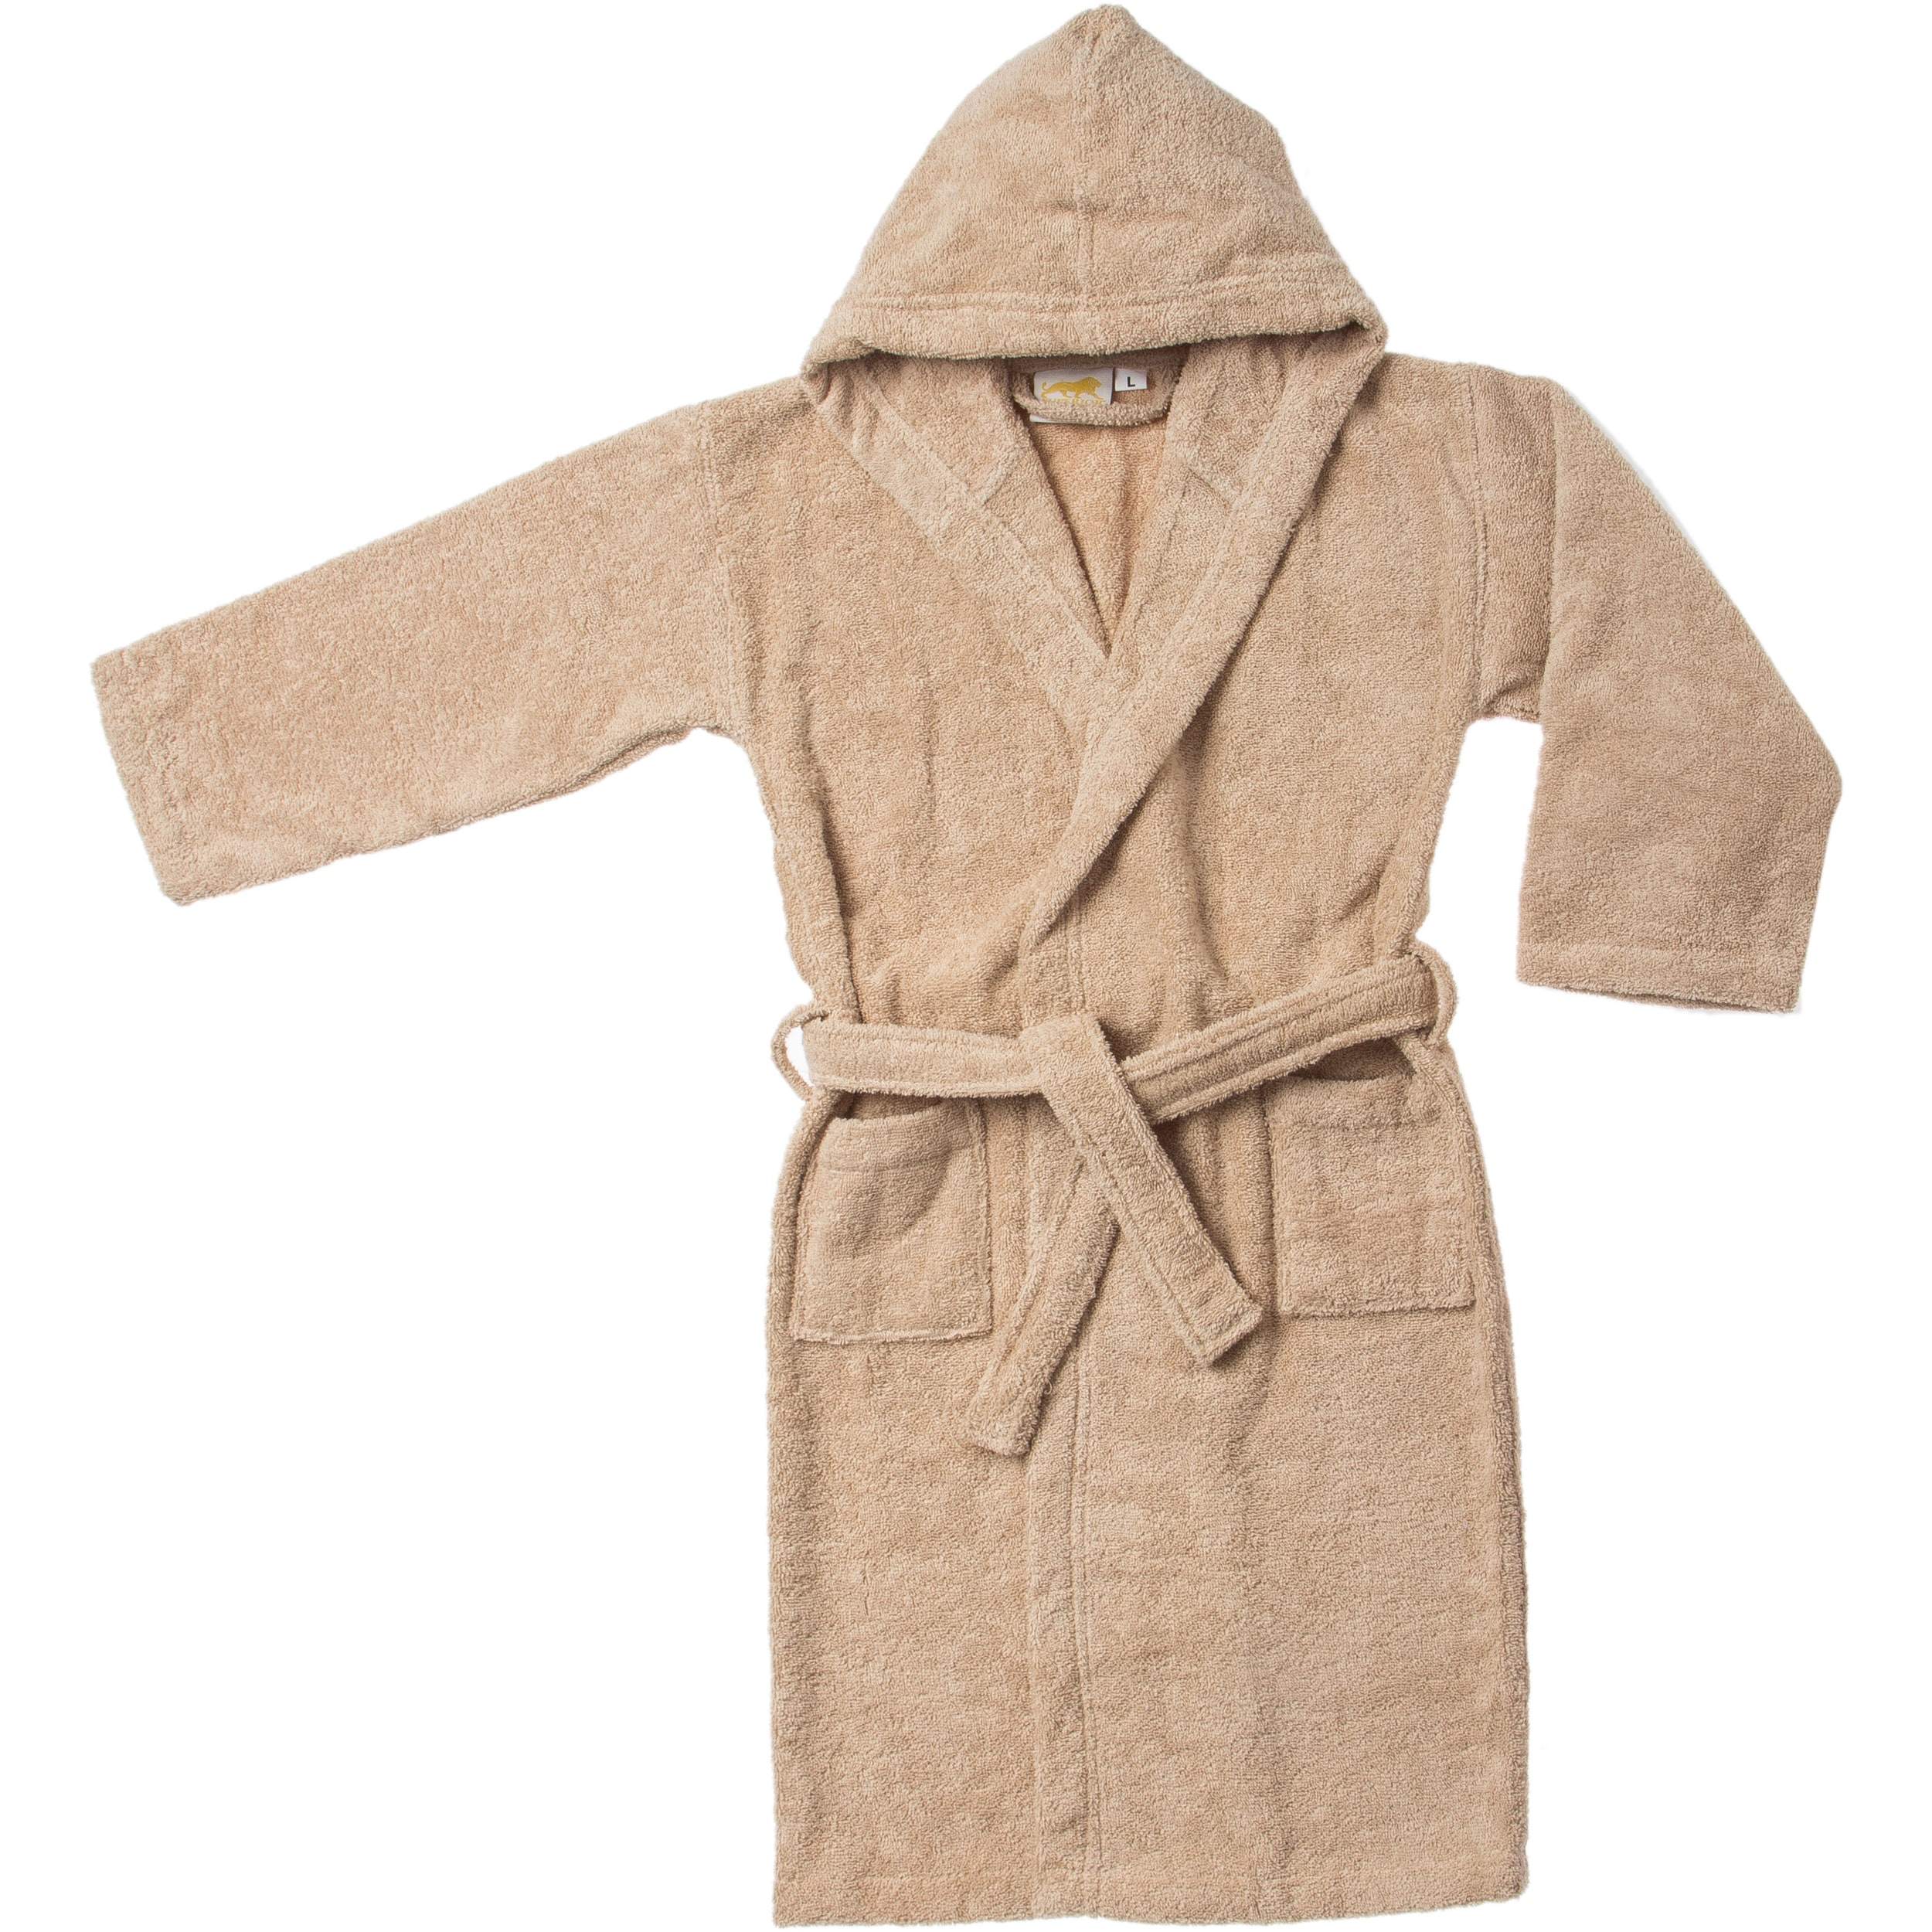 a920acac97 Shop Superior Collection Luxurious Cotton Kids Hooded Bath Robe - Free  Shipping On Orders Over  45 - Overstock - 9370416